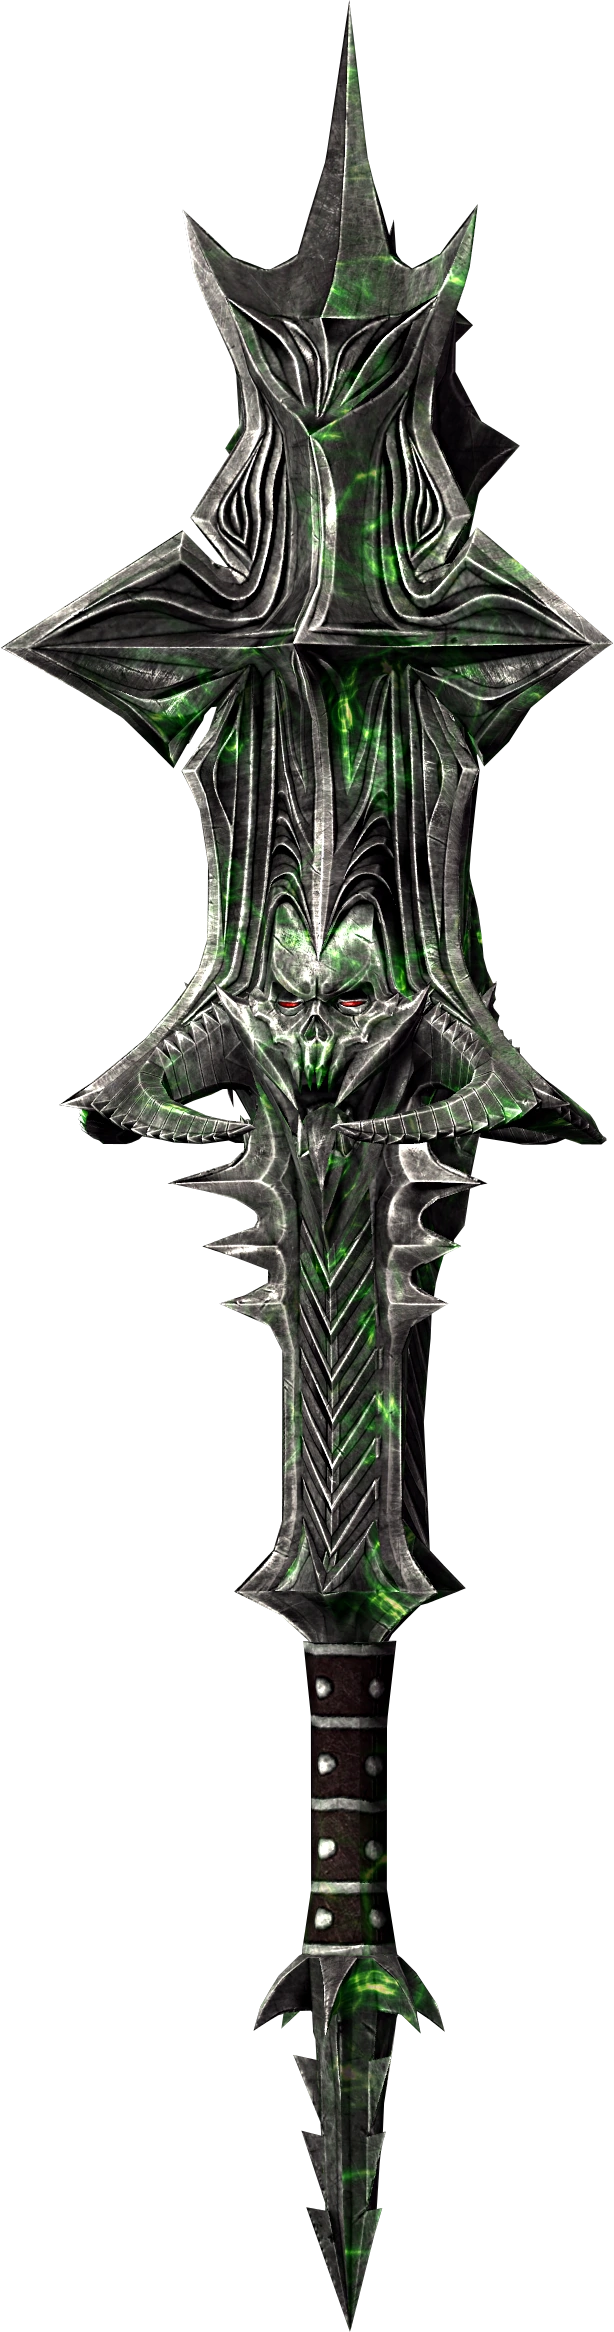 The Mace Of Molag Bal Is A Unique Mace And A Daedric Artifact Of Molag Bal In The Elder Scrolls V Skyrim The M In 2020 Skyrim Concept Art Elder Scrolls